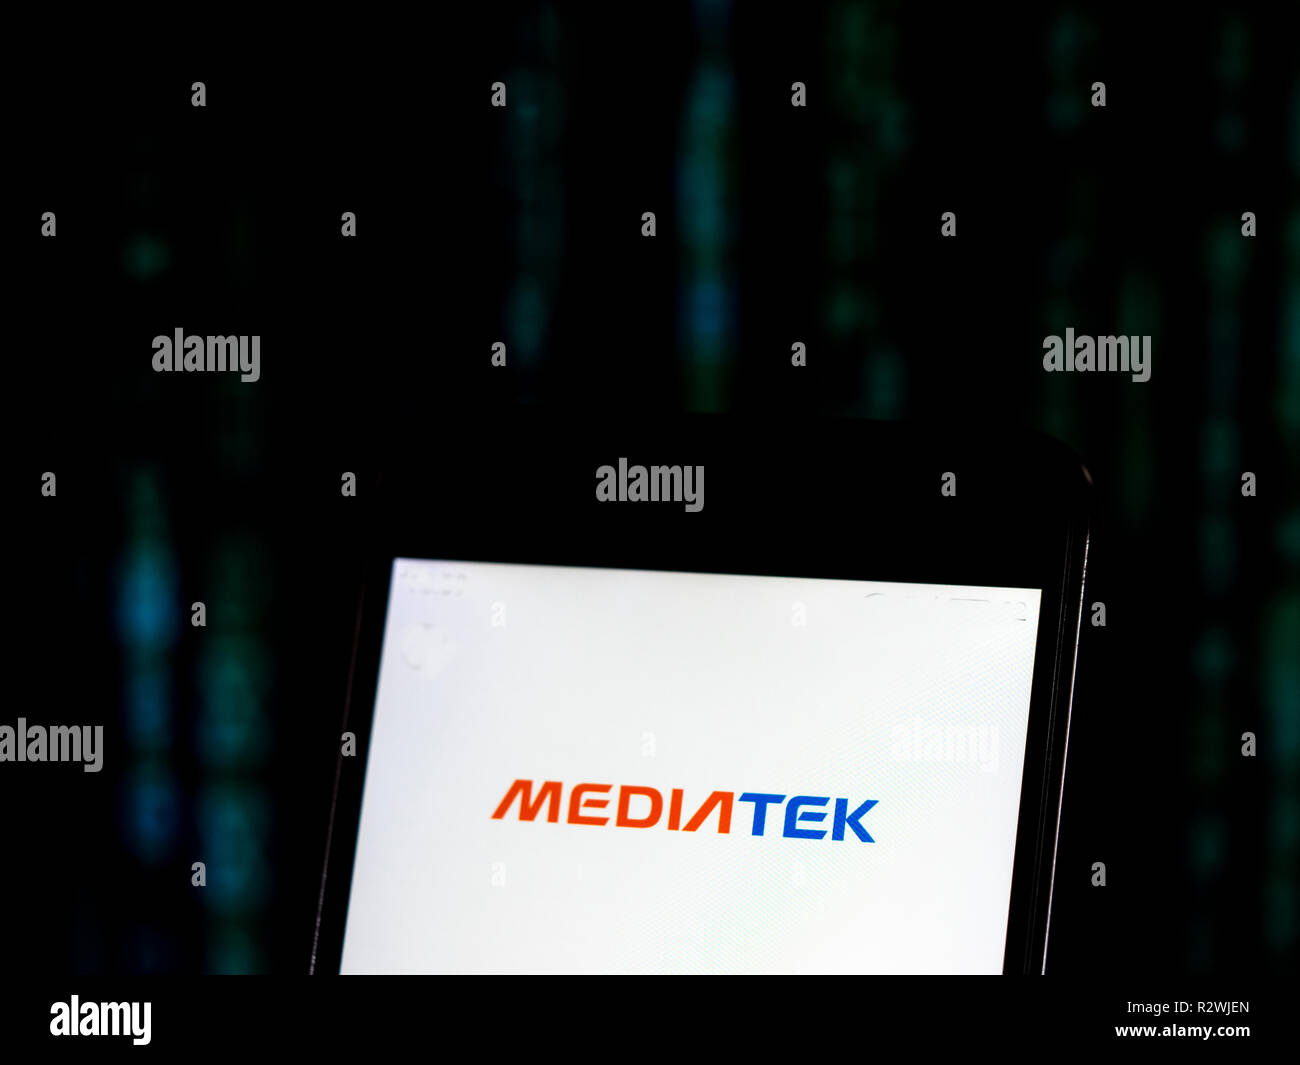 MediaTek Company   logo seen displayed on smart phone. MediaTek Inc. is a Taiwanese fabless semiconductor company that provides chips for wireless communications, High-definition television, handheld mobile devices like smartphones and tablet computers, navigation systems, consumer multimedia products and Digital subscriber line services as well as optical disc drives. - Stock Image